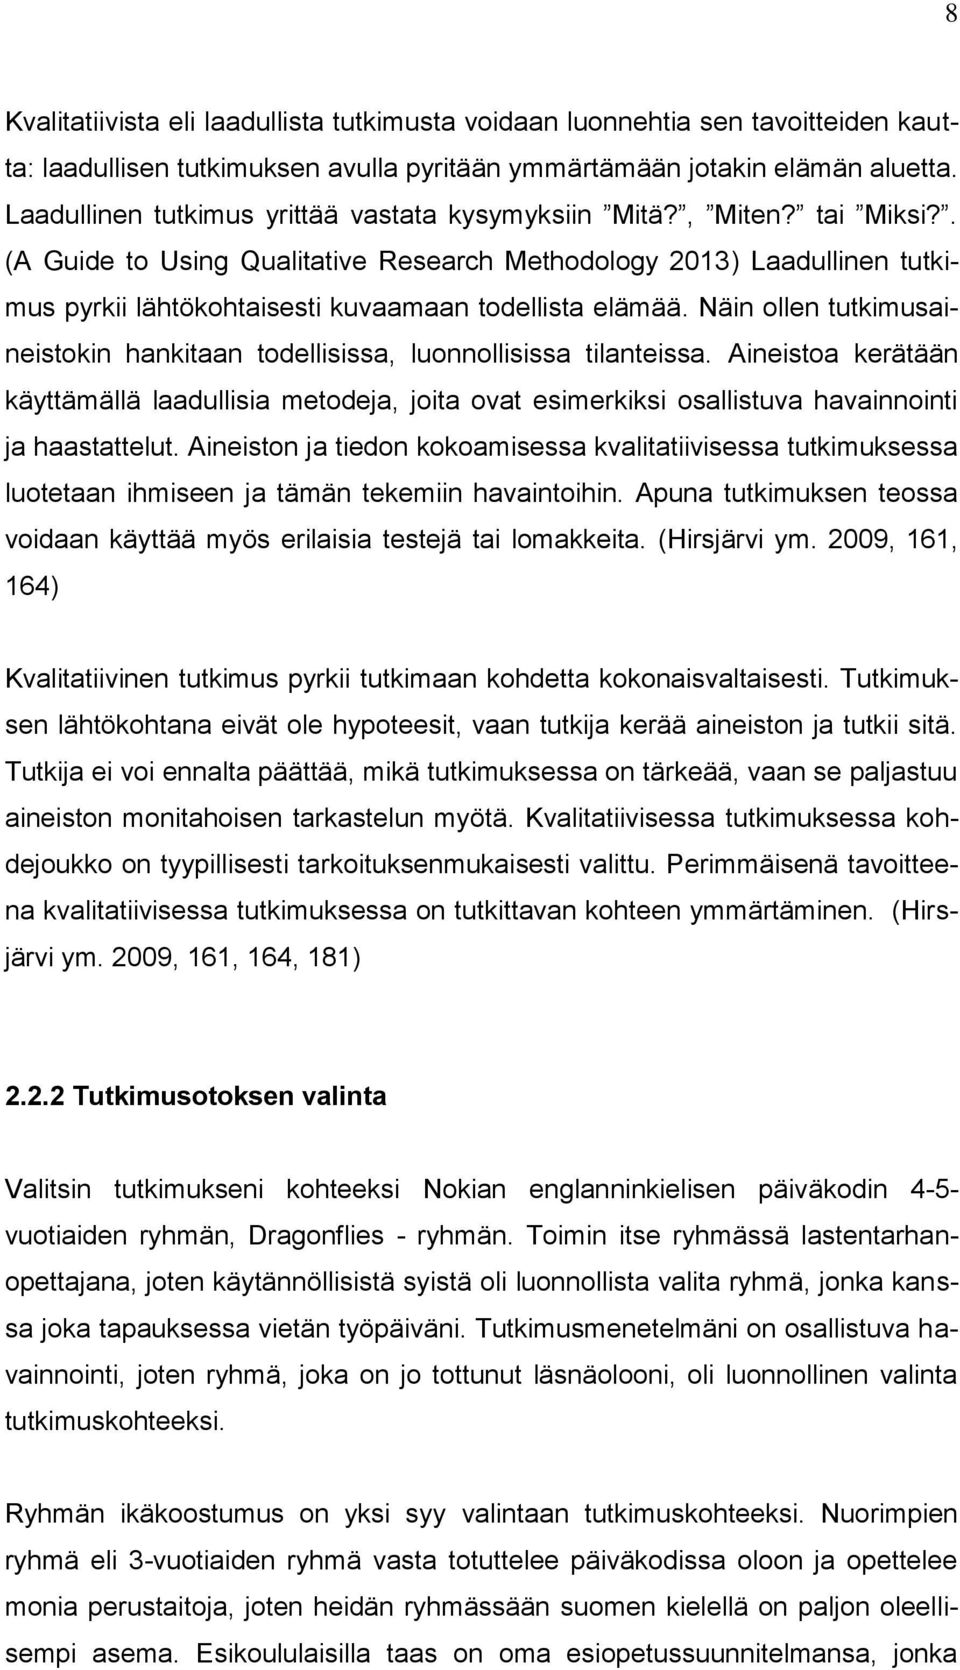 . (A Guide to Using Qualitative Research Methodology 2013) Laadullinen tutkimus pyrkii lähtökohtaisesti kuvaamaan todellista elämää.